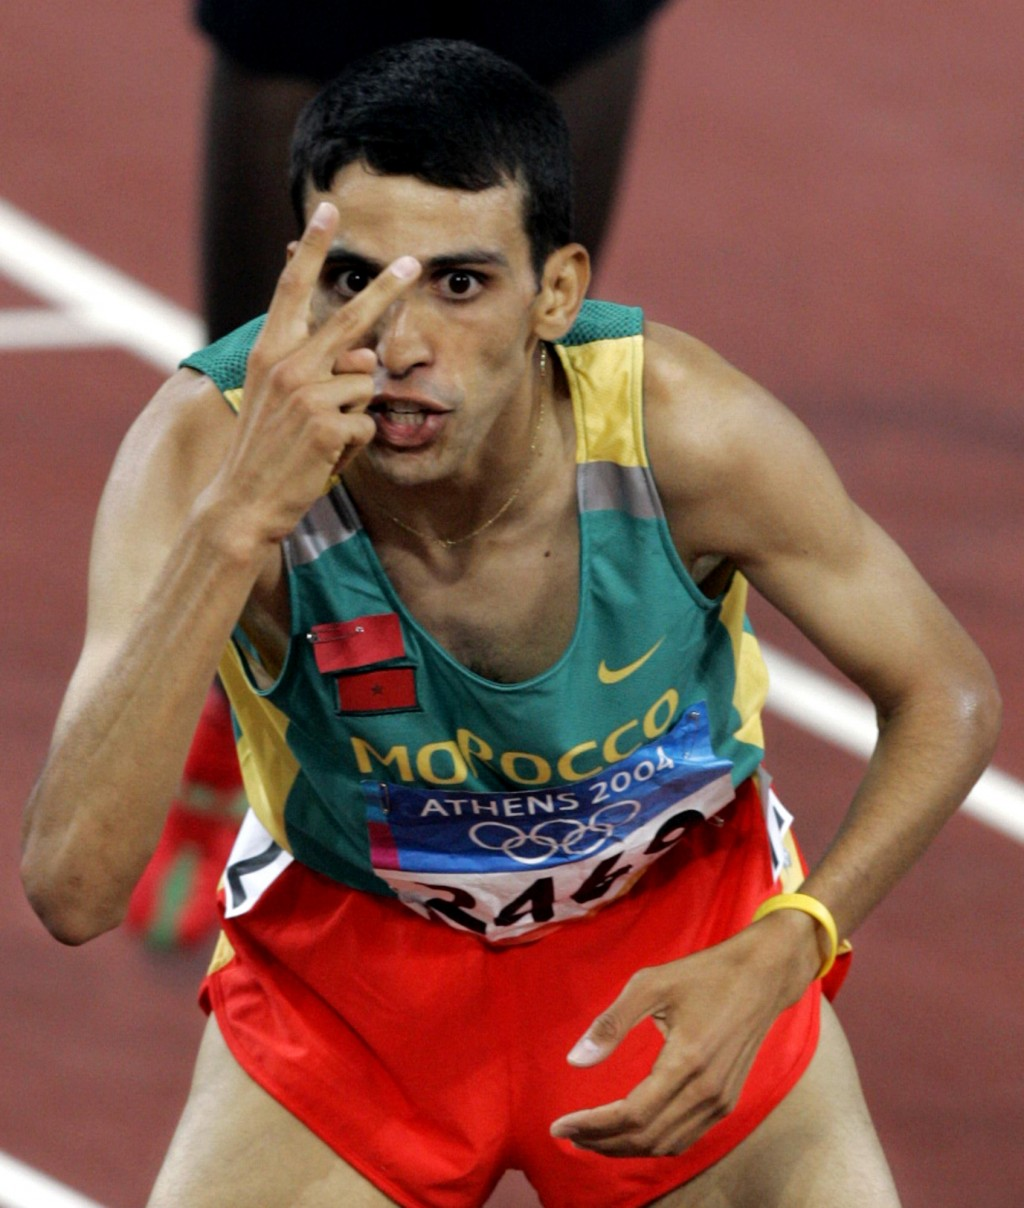 FILE - In this Aug. 28, 2004, file photo, Morocco's Hicham El Guerrouj celebrates after winning the gold medal in the 5000-meter final, his second gol...